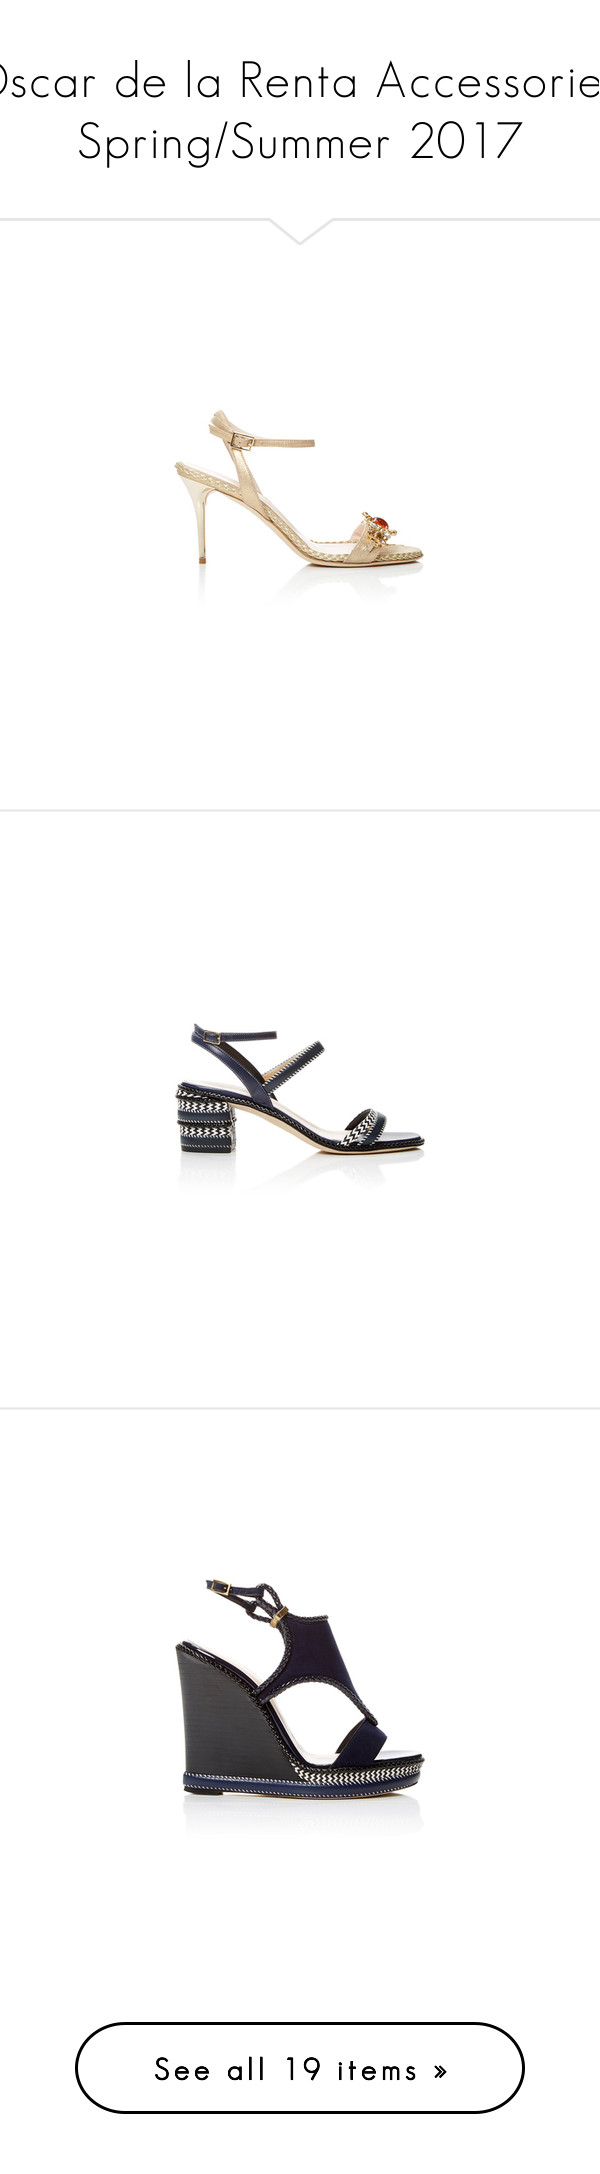 """""""Oscar de la Renta Accessories: Spring/Summer 2017"""" by livnd ❤ liked on Polyvore featuring shoes, pumps, metallic pumps, oscar de la renta pumps, decorating shoes, oscar de la renta, embellished pumps, embellished shoes, oscar de la renta shoes and suede shoes"""